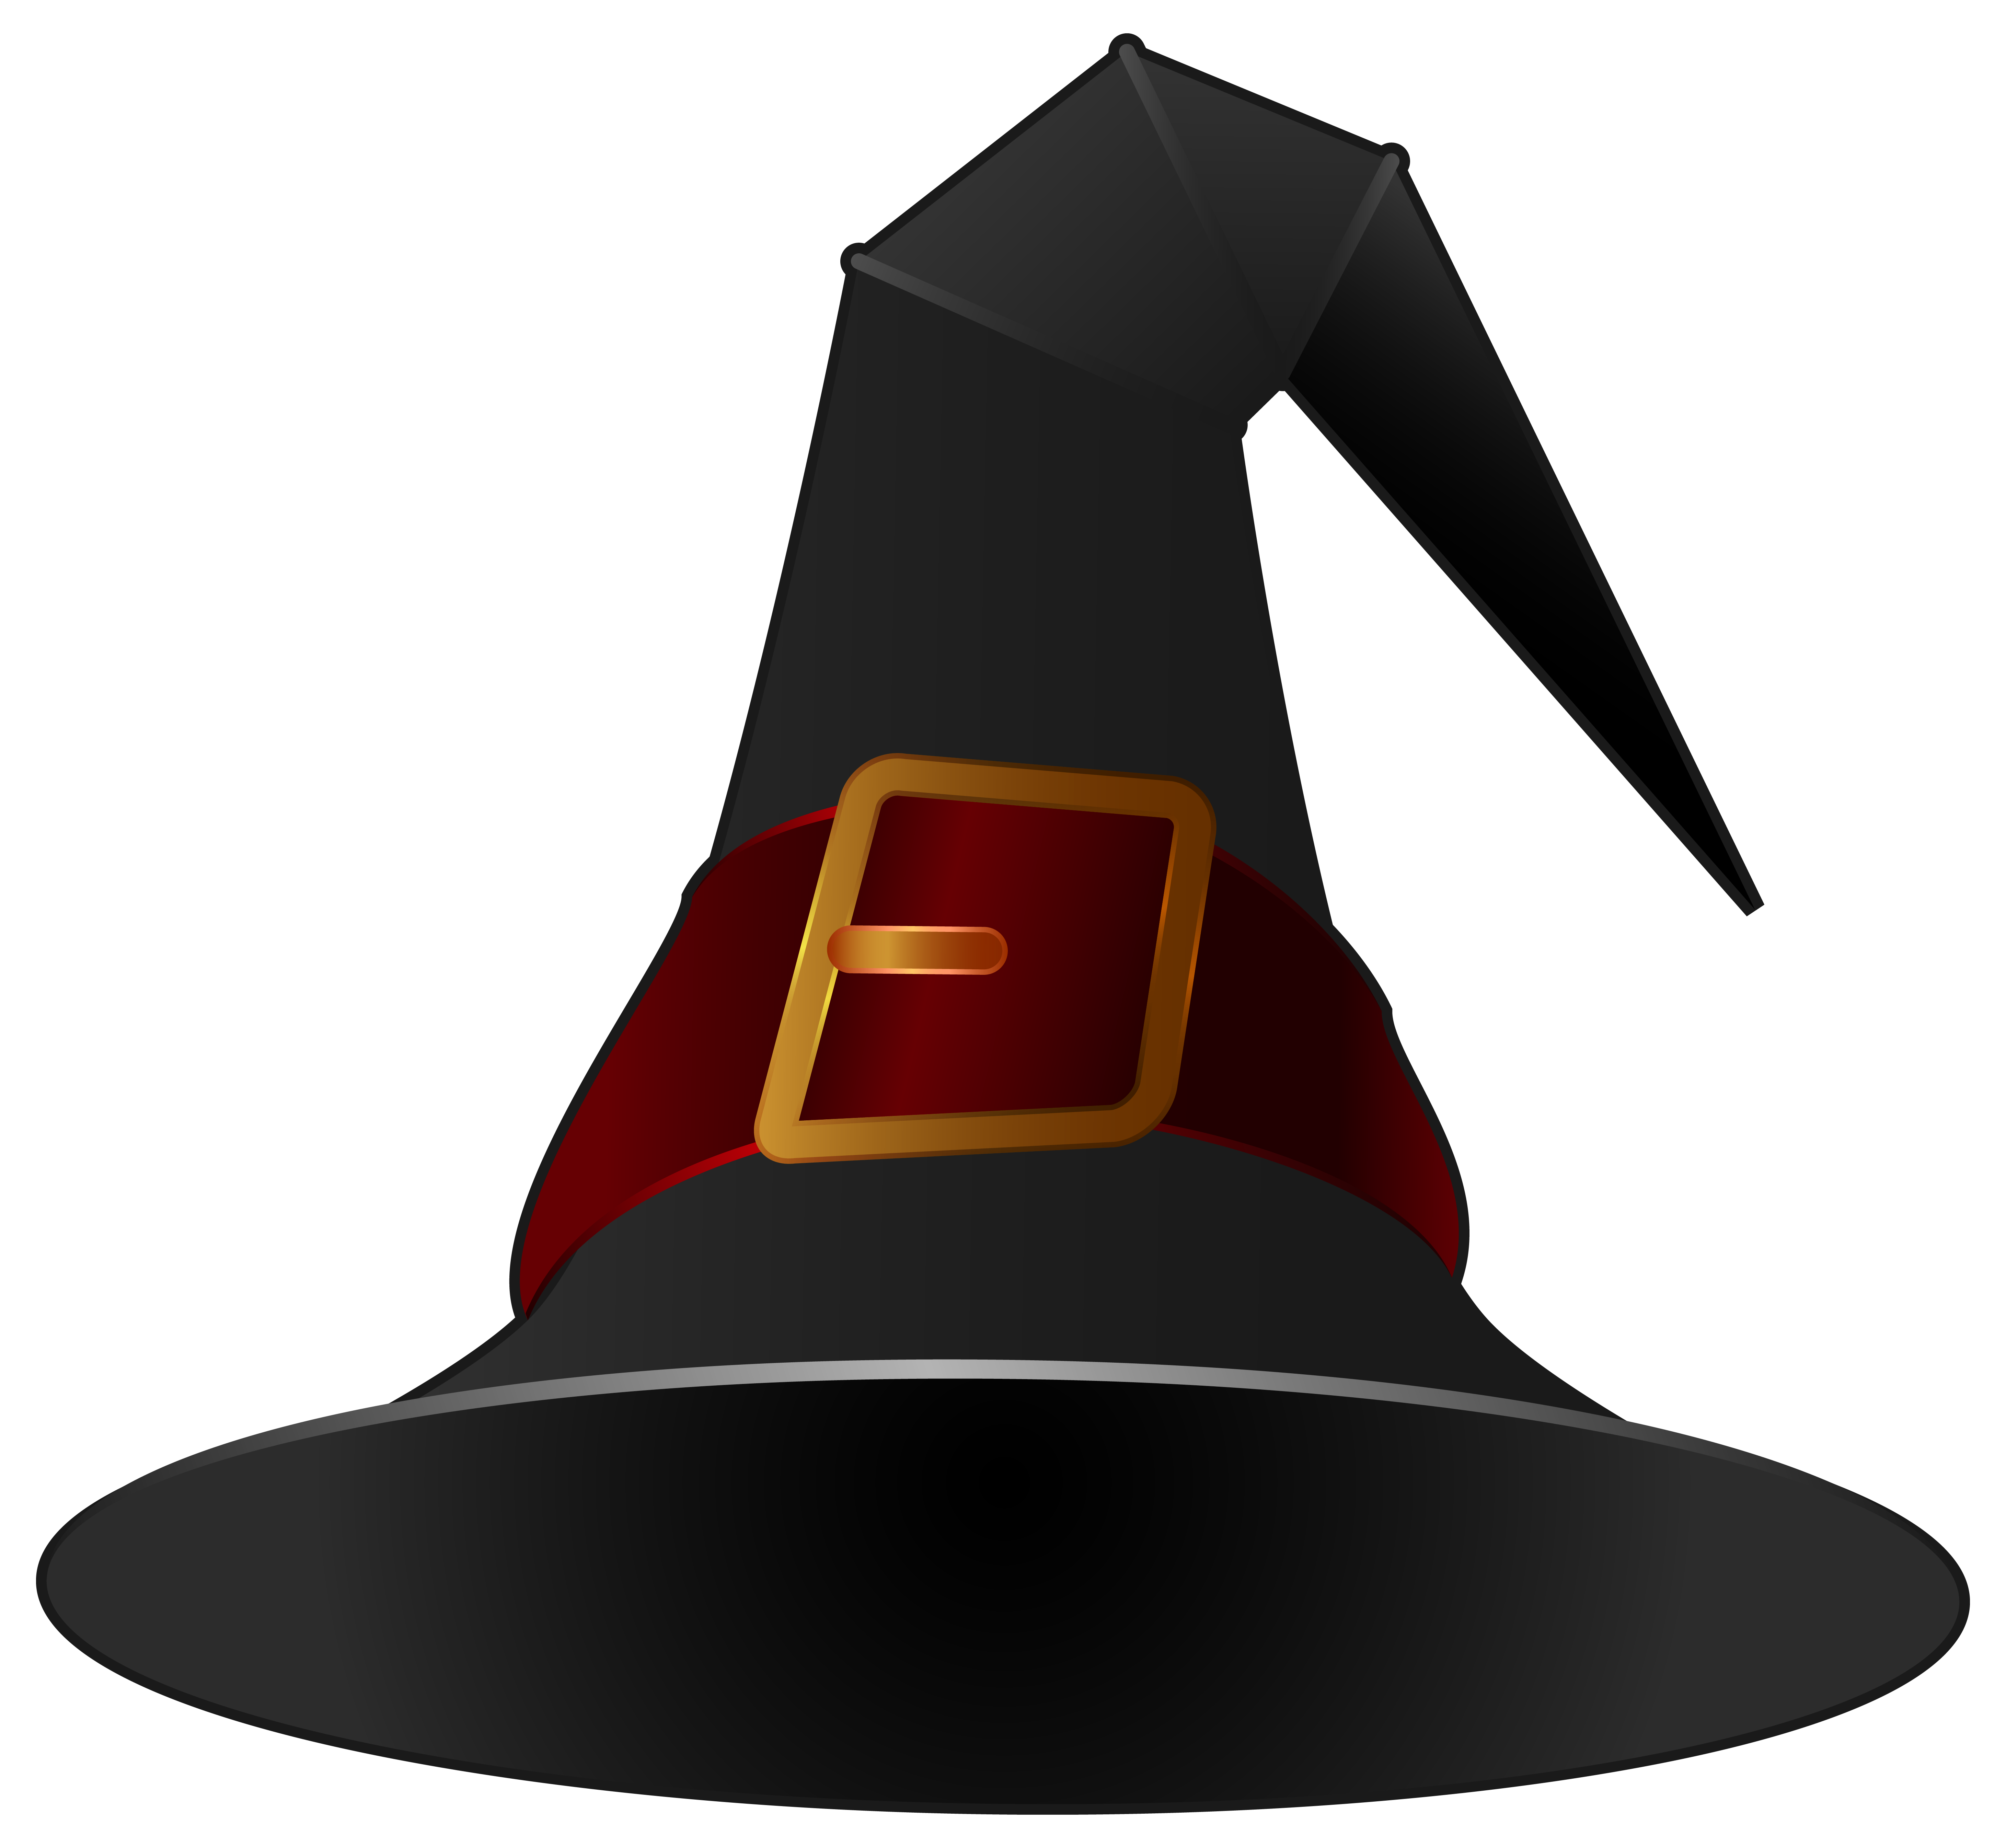 5844x5384 Black Witch Hat Png Clipart Imageu200b Gallery Yopriceville